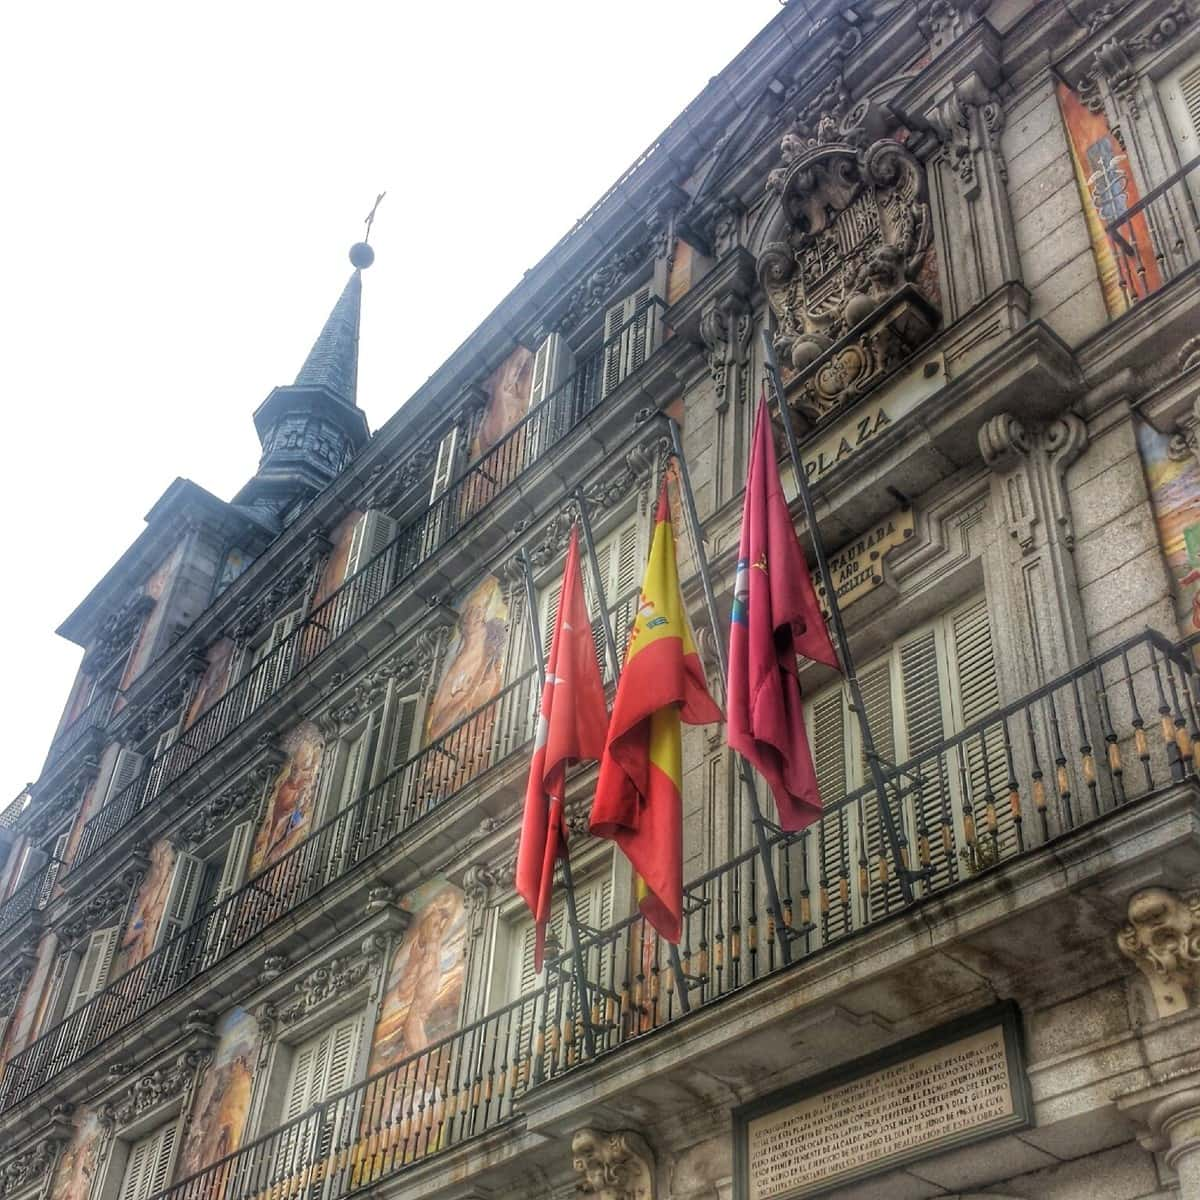 Visit Plaza Mayor on the best walking tours in Madrid.